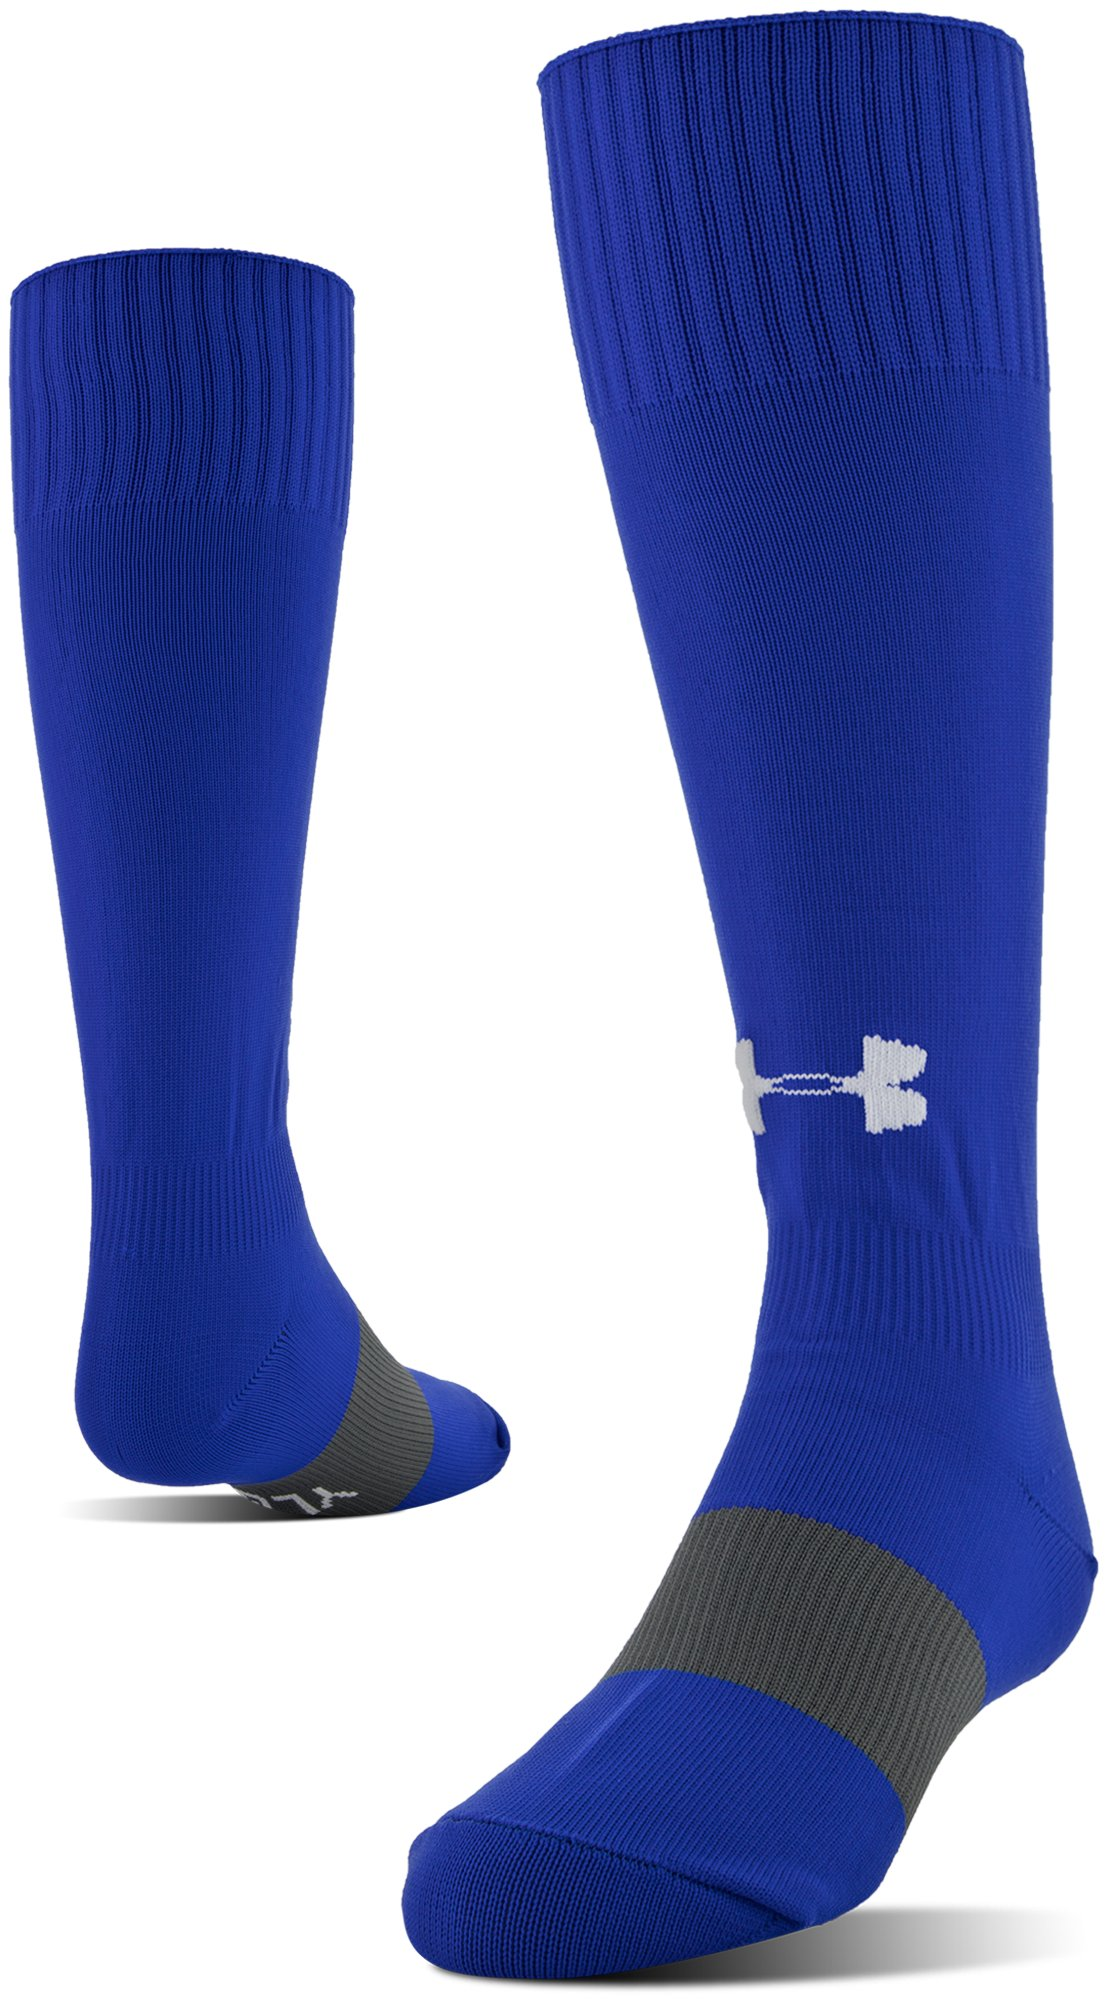 royal socks UA Soccer Solid Over-The-Calf Socks Comfortable, good quality....These socks fit GREAT for our 13 year old daughter....Great Fit